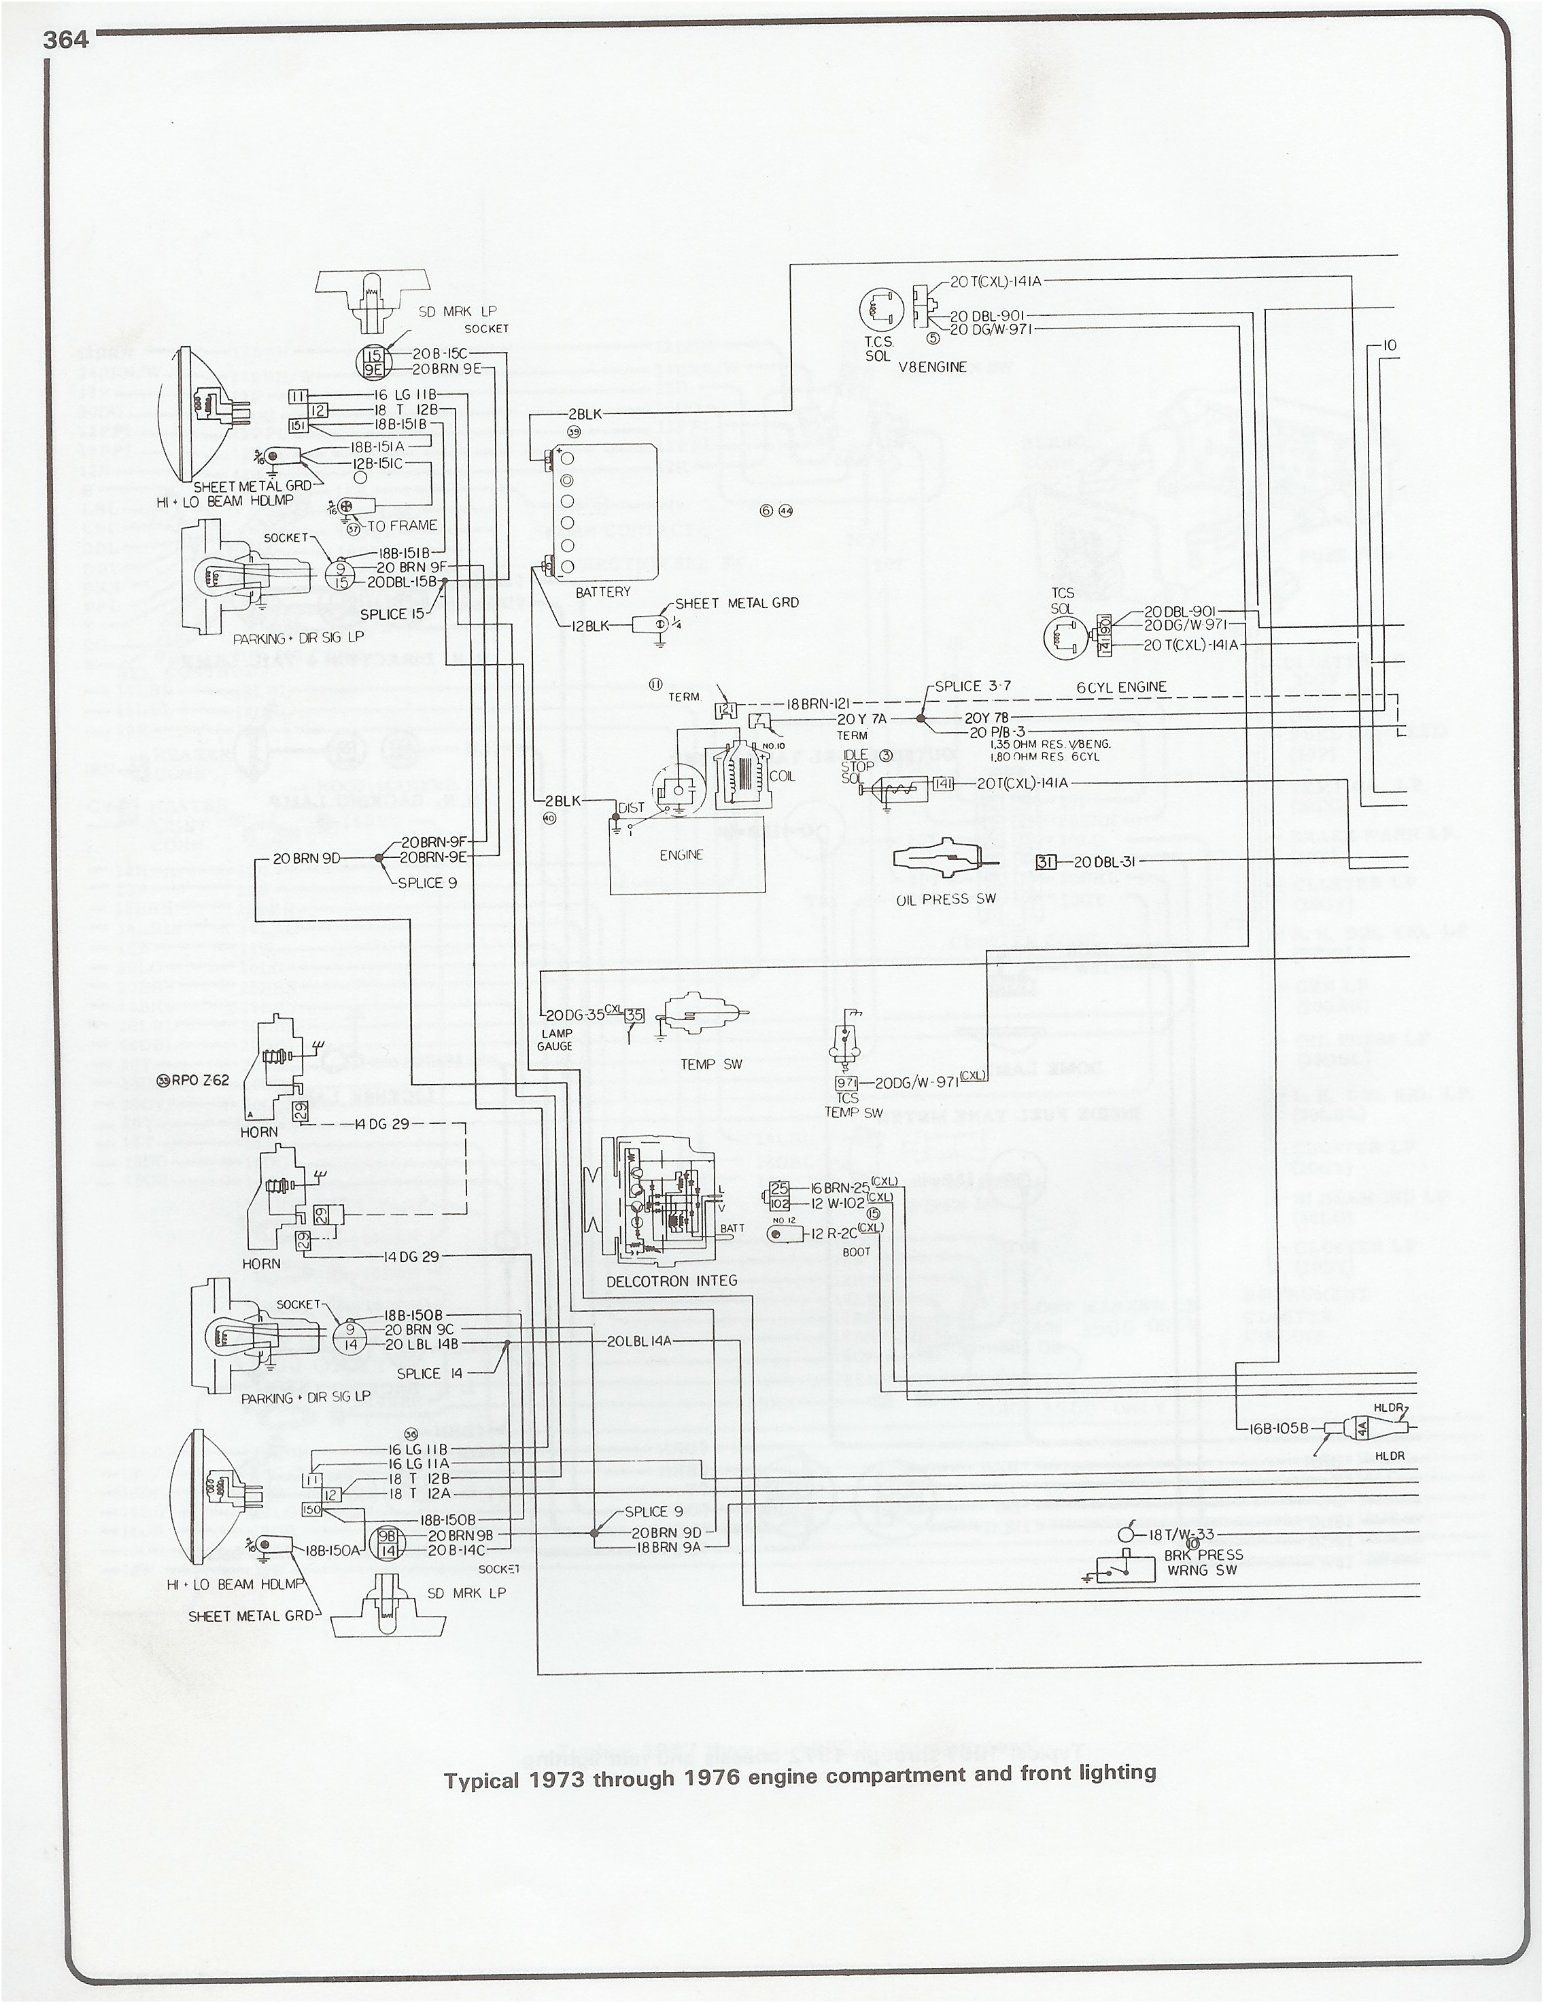 medium resolution of 73 chevy c10 fuse box wiring diagram mega 73 chevy c10 fuse box